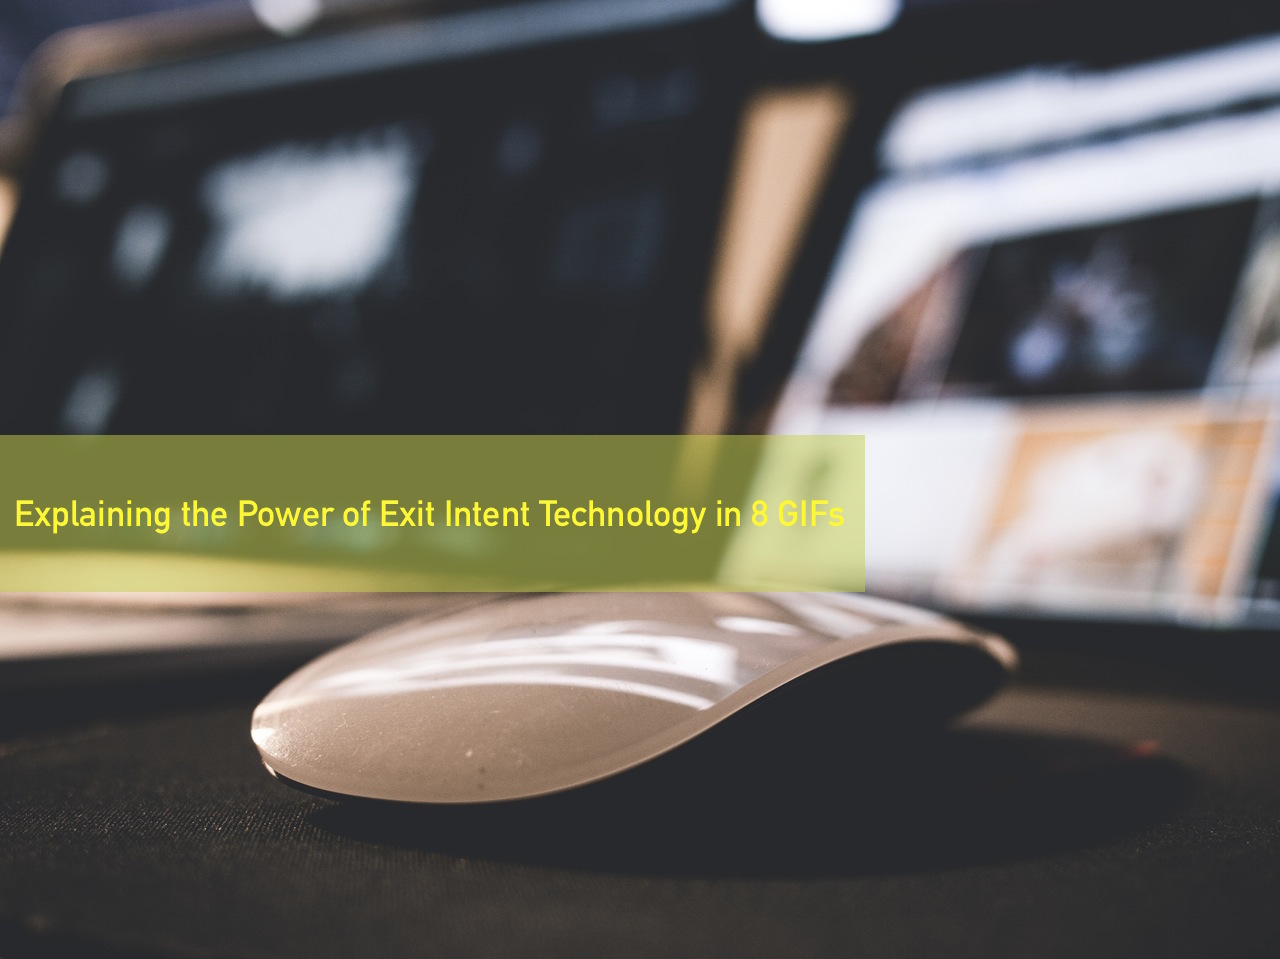 Explaining the Power of Exit Intent Technology in 8 GIFs